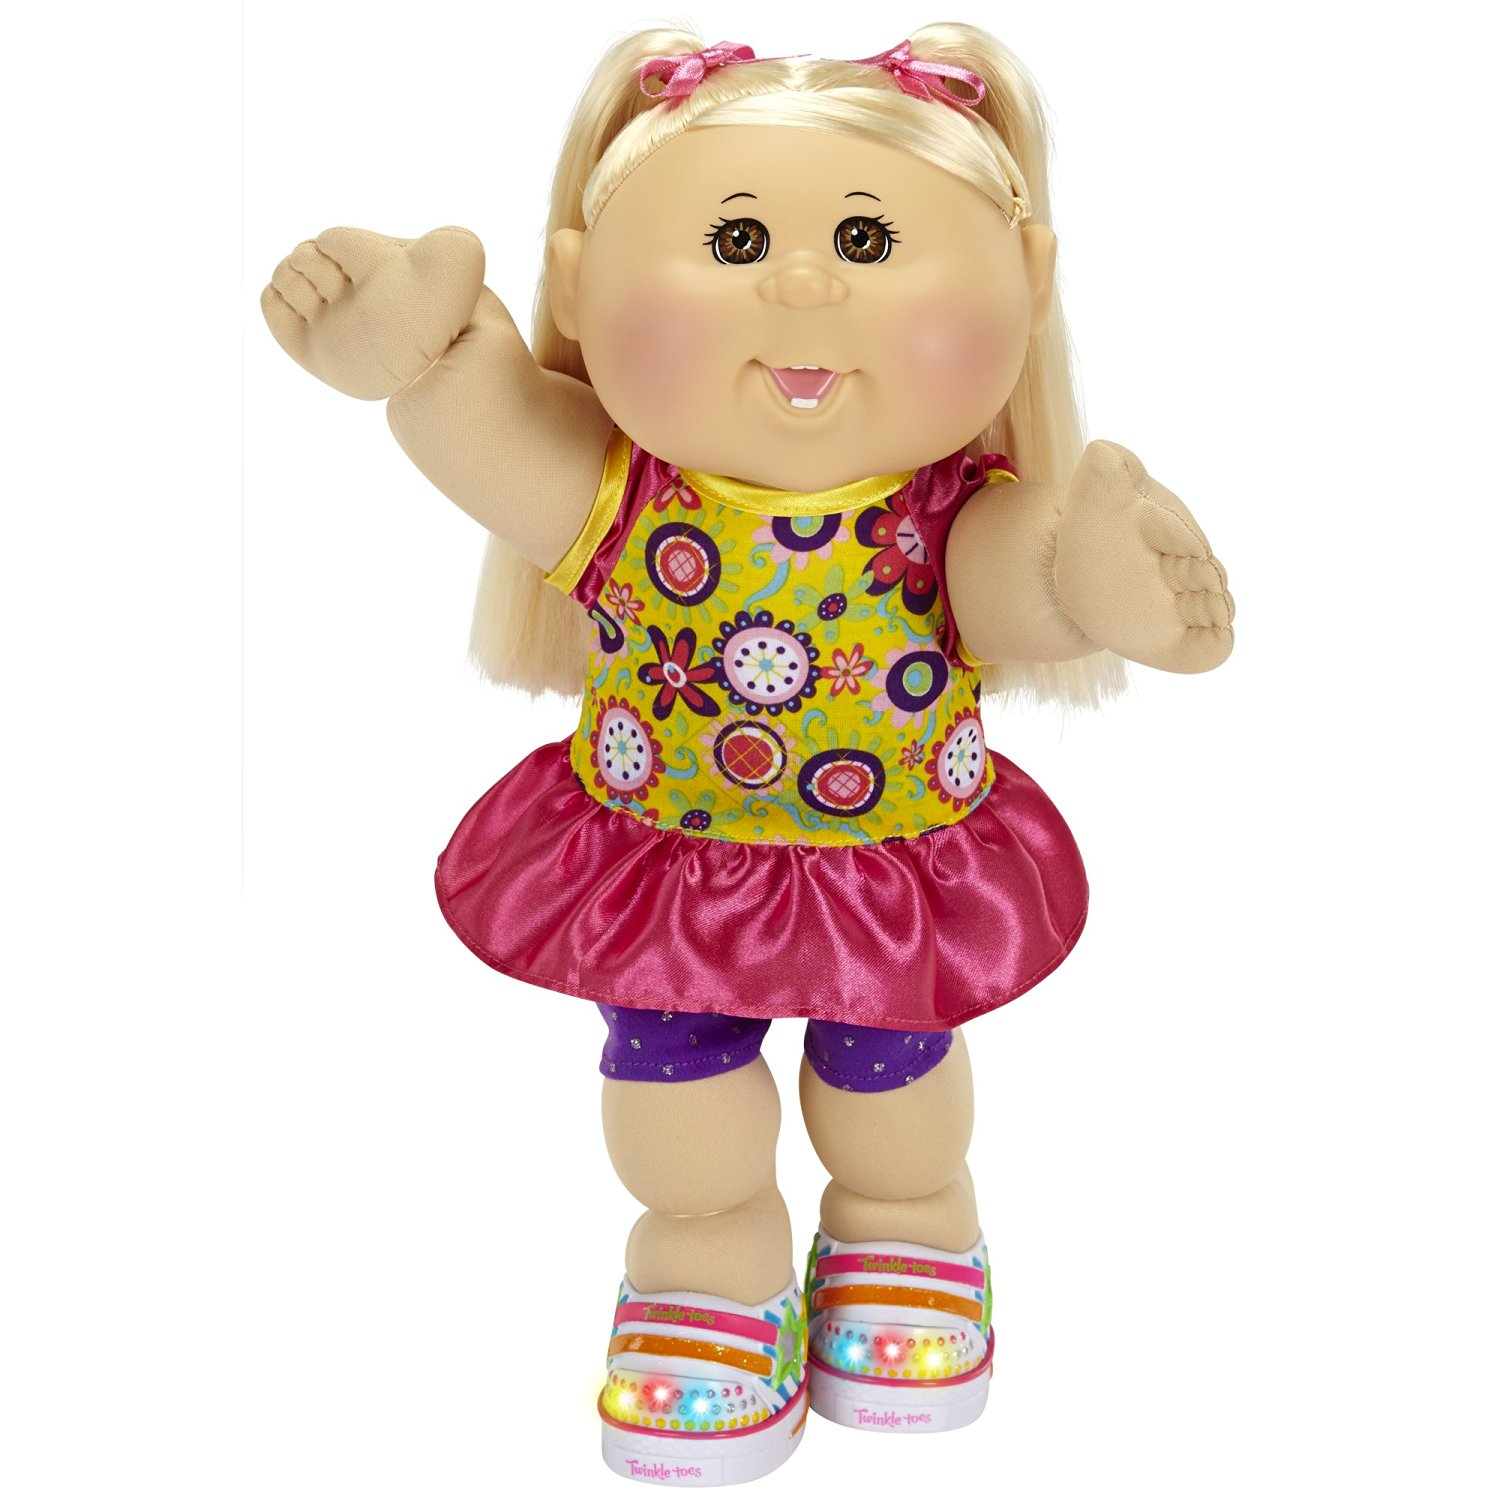 Cabbage Patch Kids Twinkle Toes: Caucasian Girl Doll, Blonde, Brown Eyes